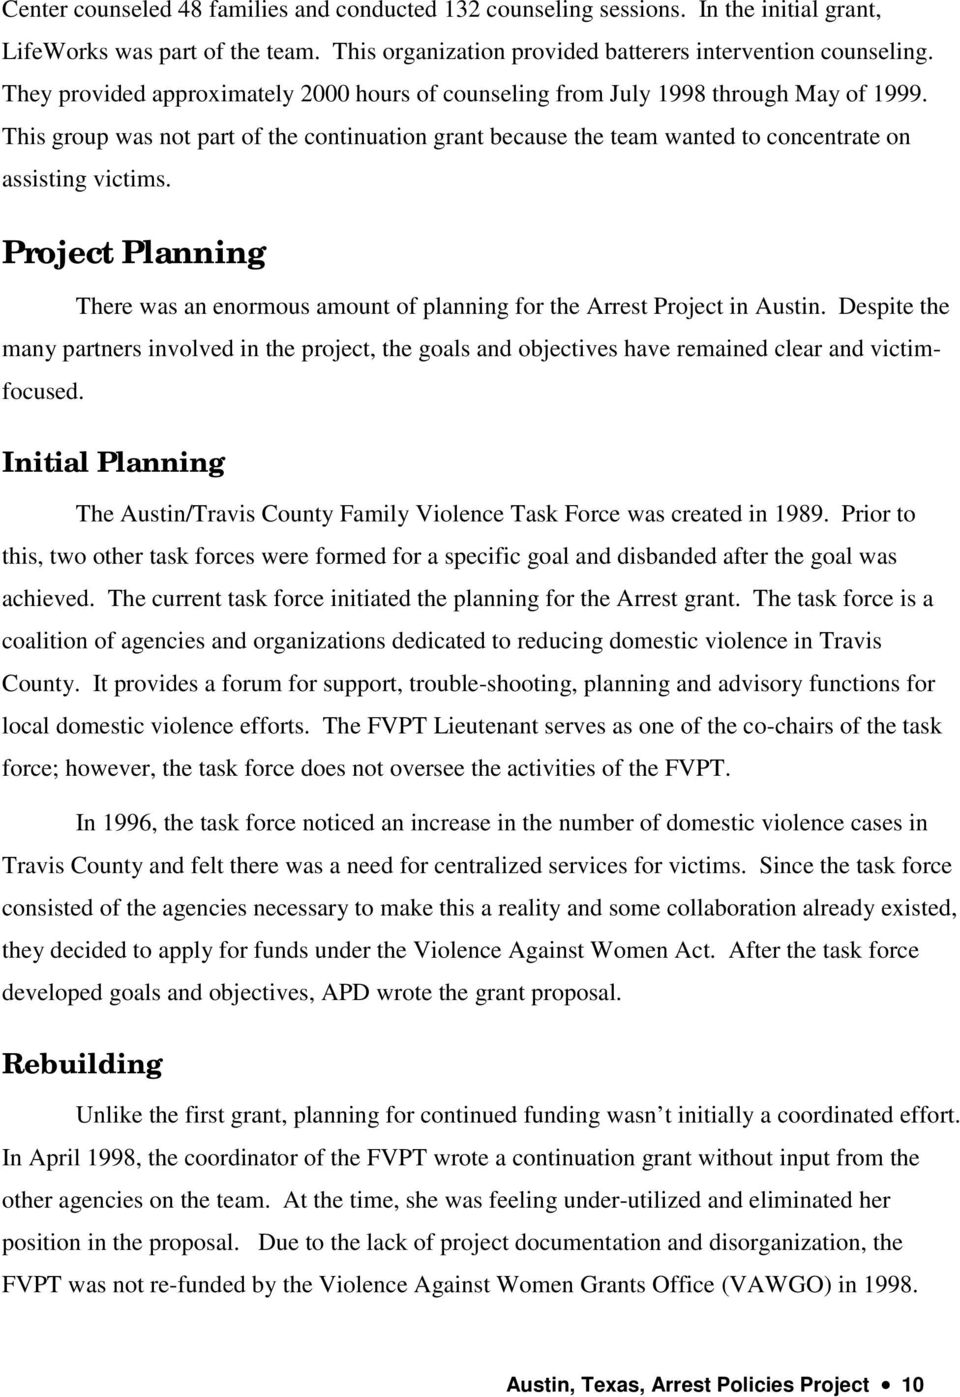 Project Planning There was an enormous amount of planning for the Arrest Project in Austin.